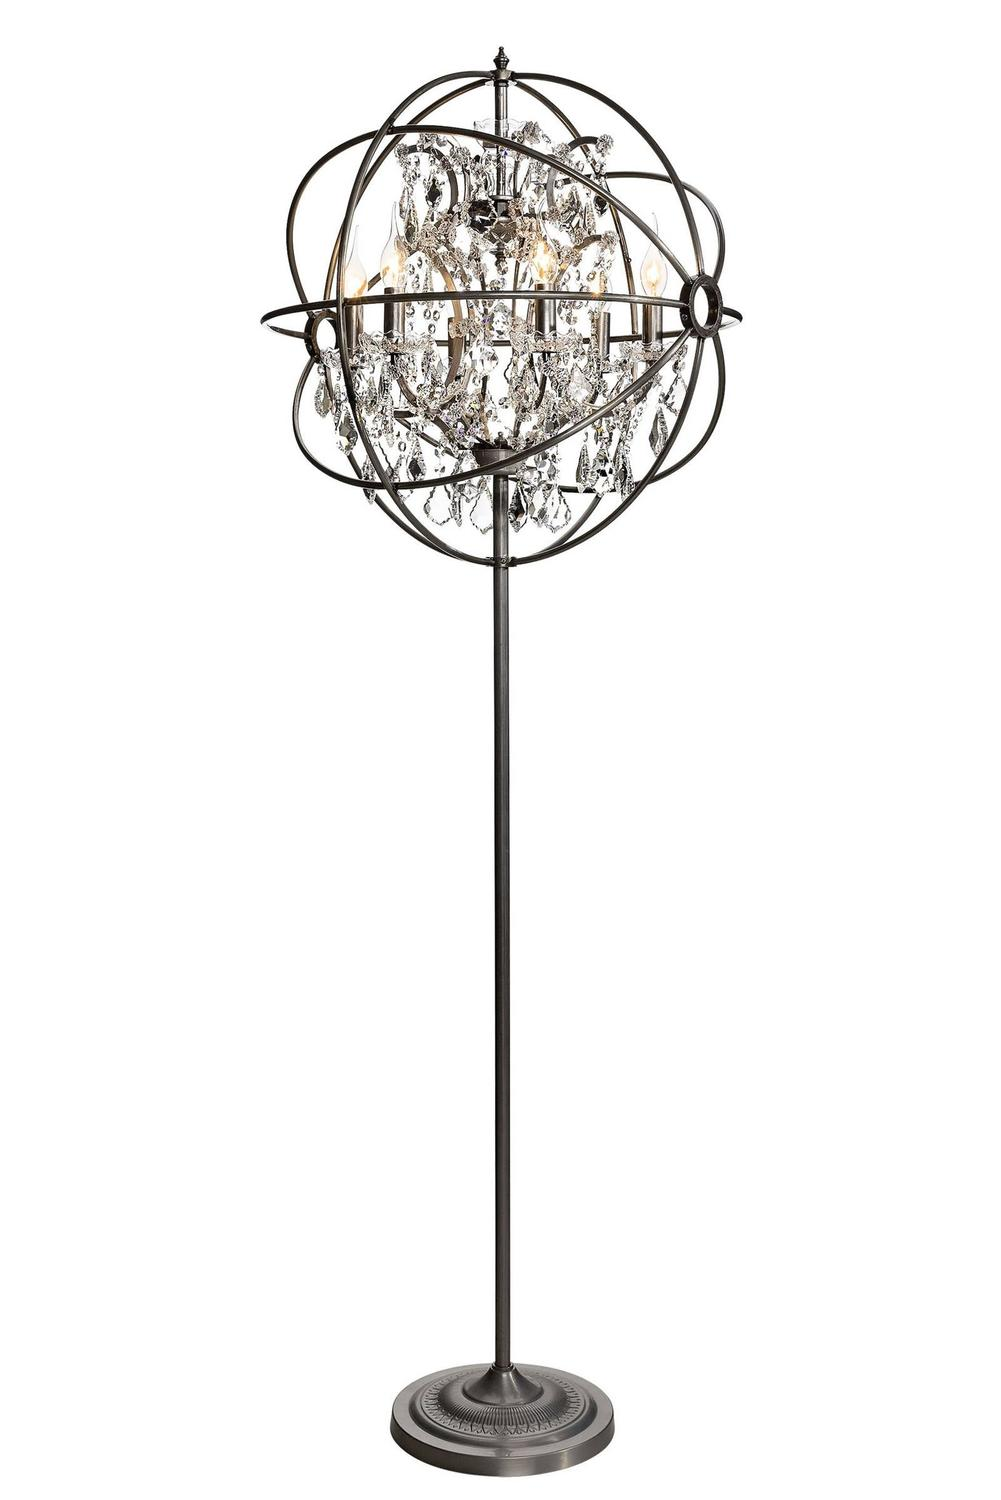 Crystal Antique Floor Lamp Iron And Crystal For Sale At